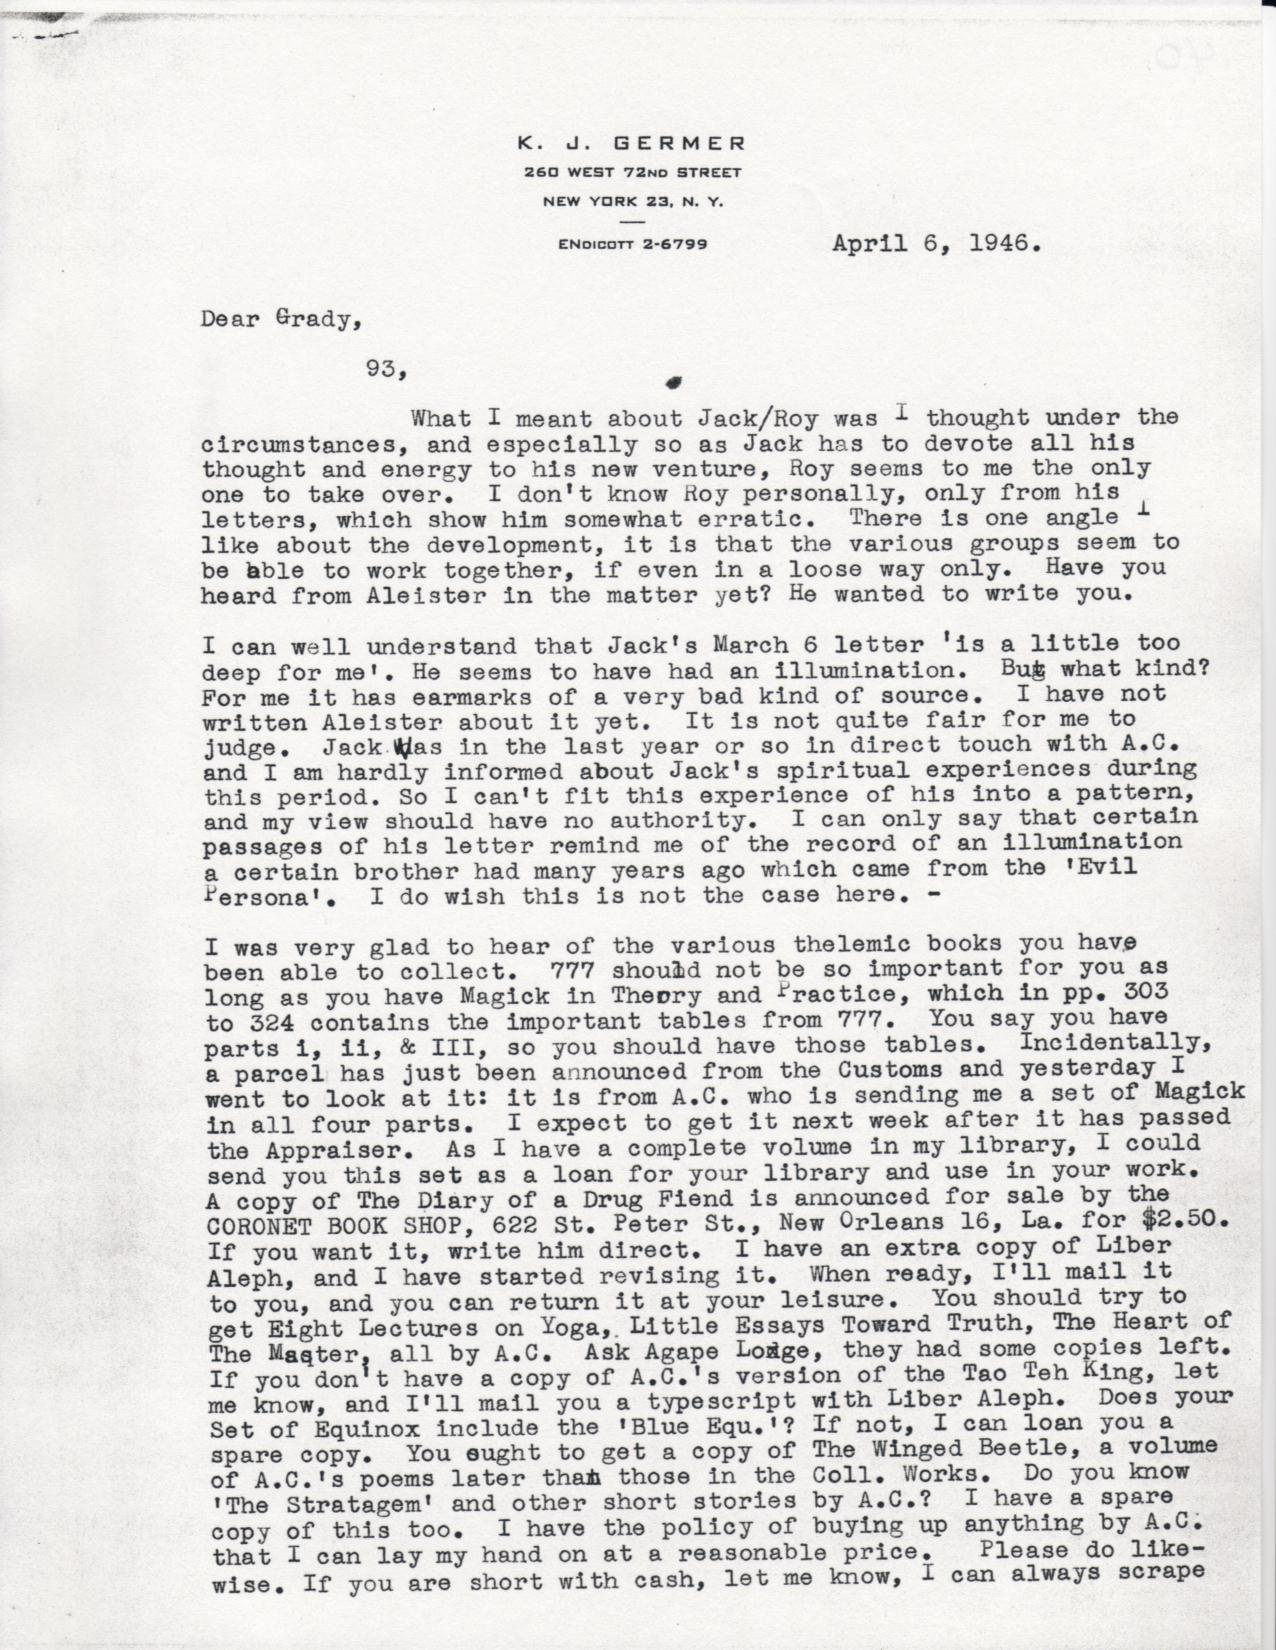 (04/06/1946) Karl Germer to Grady McMurtry (pg.1)